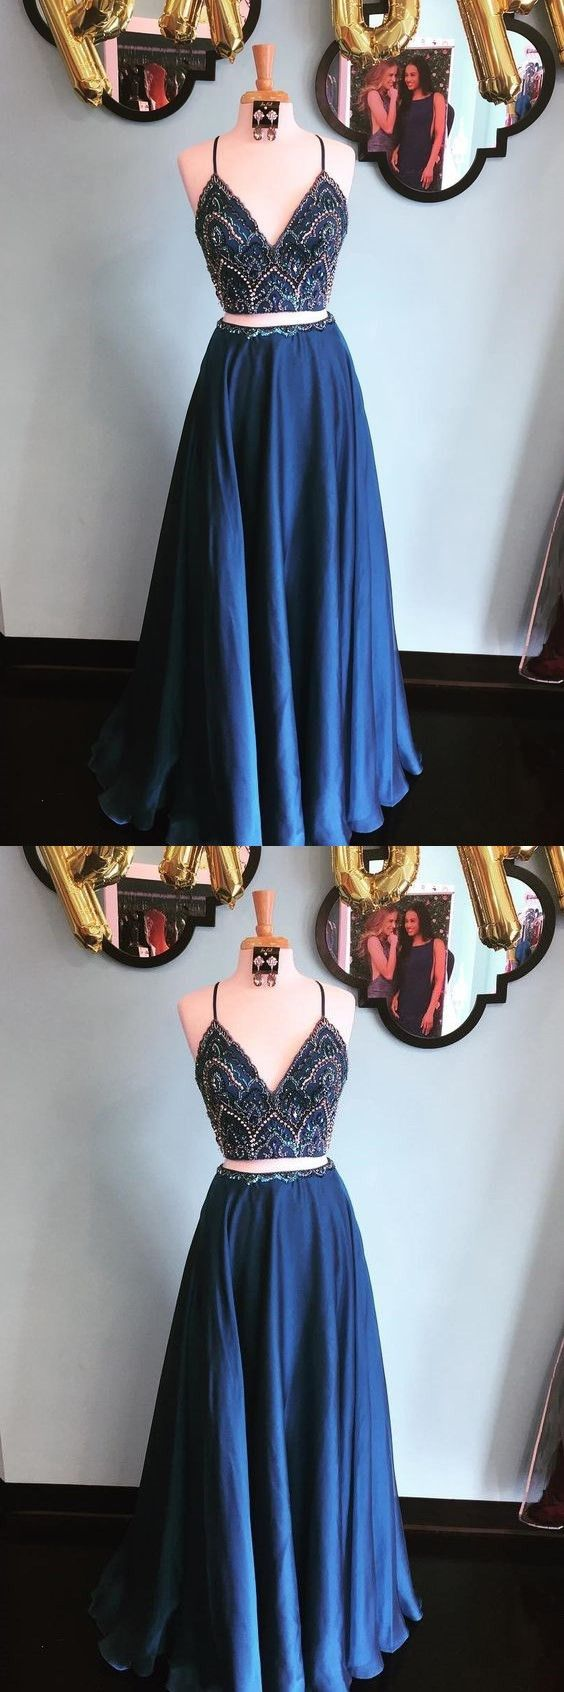 Sparkly two piece sequins navy blue long prom dress g from